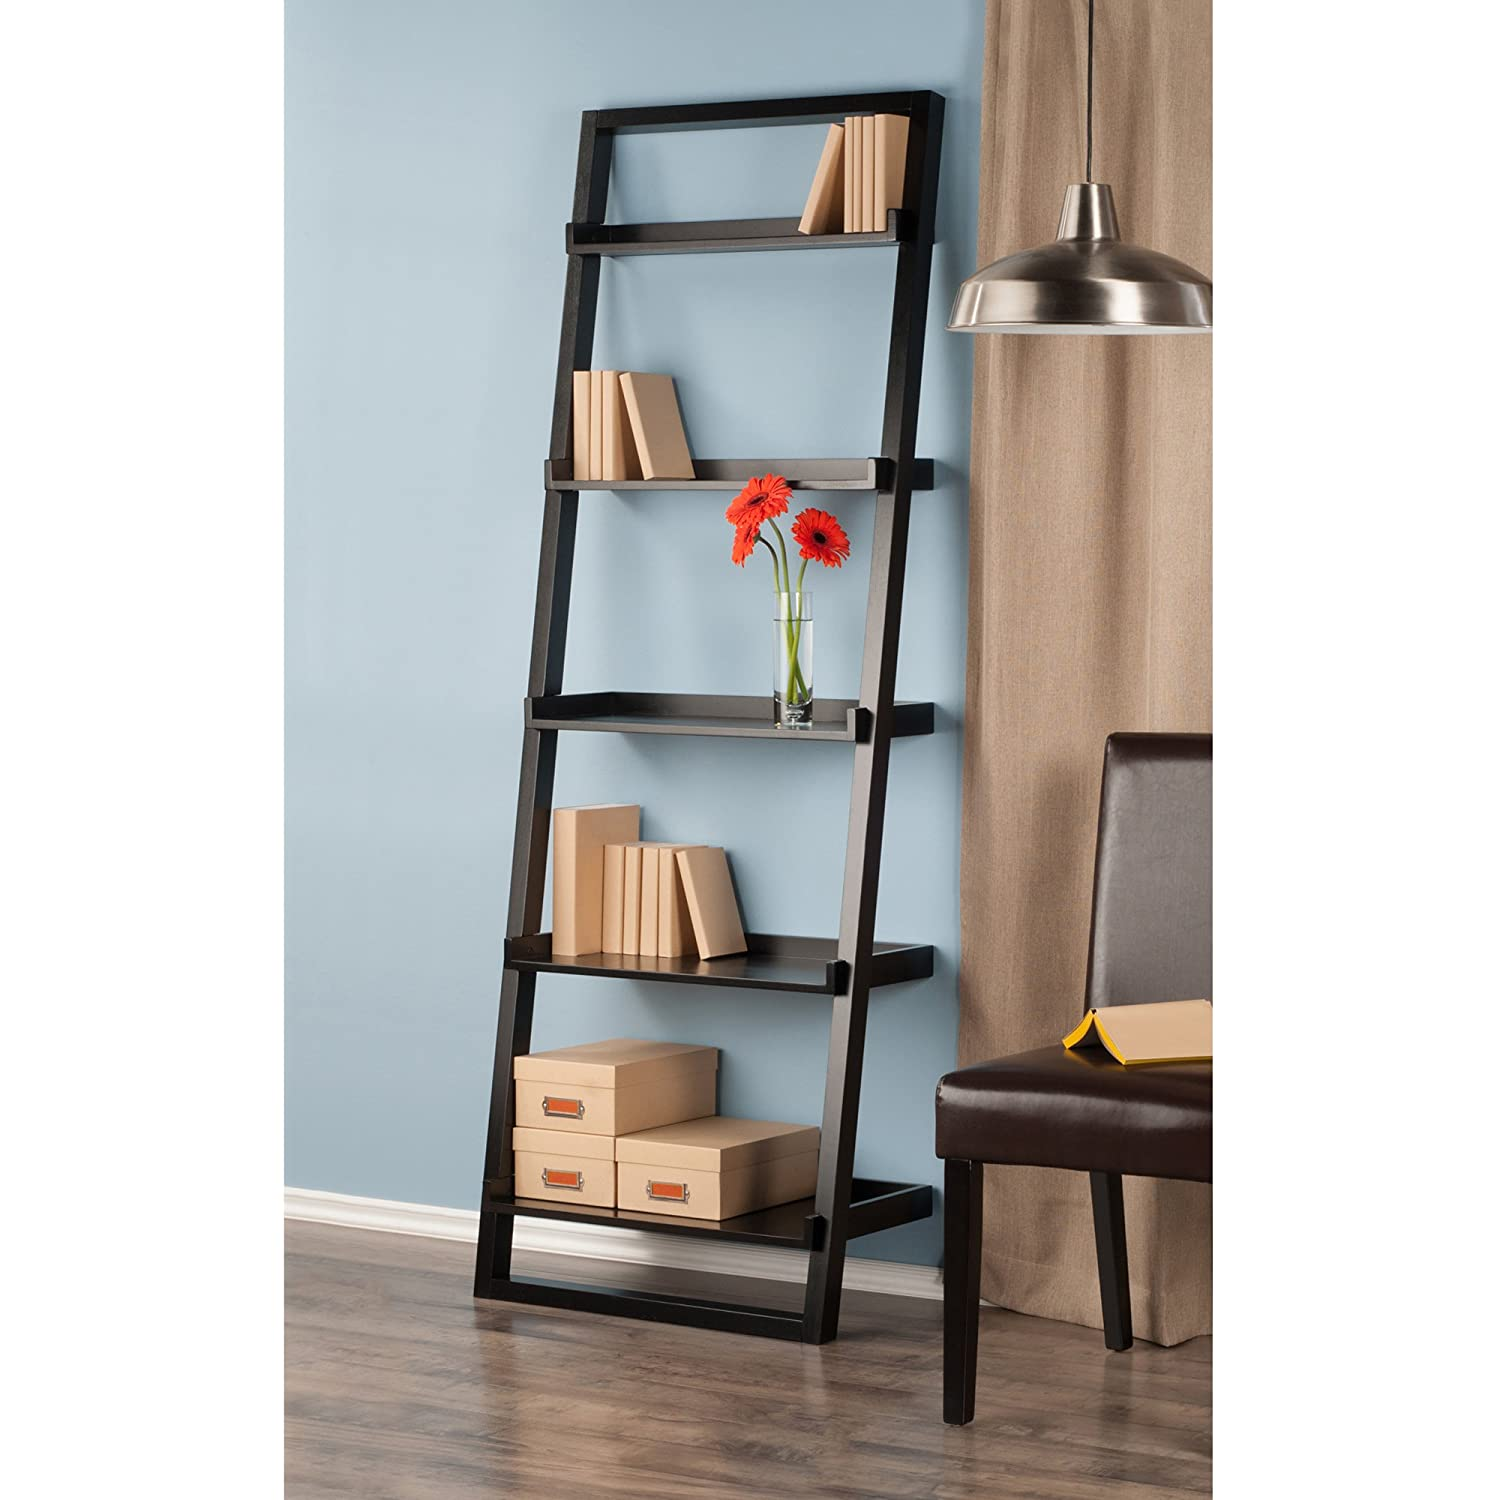 Amazon.com: Winsome Wood Bailey Leaning 5-Tier Shelving Unit, Black ...